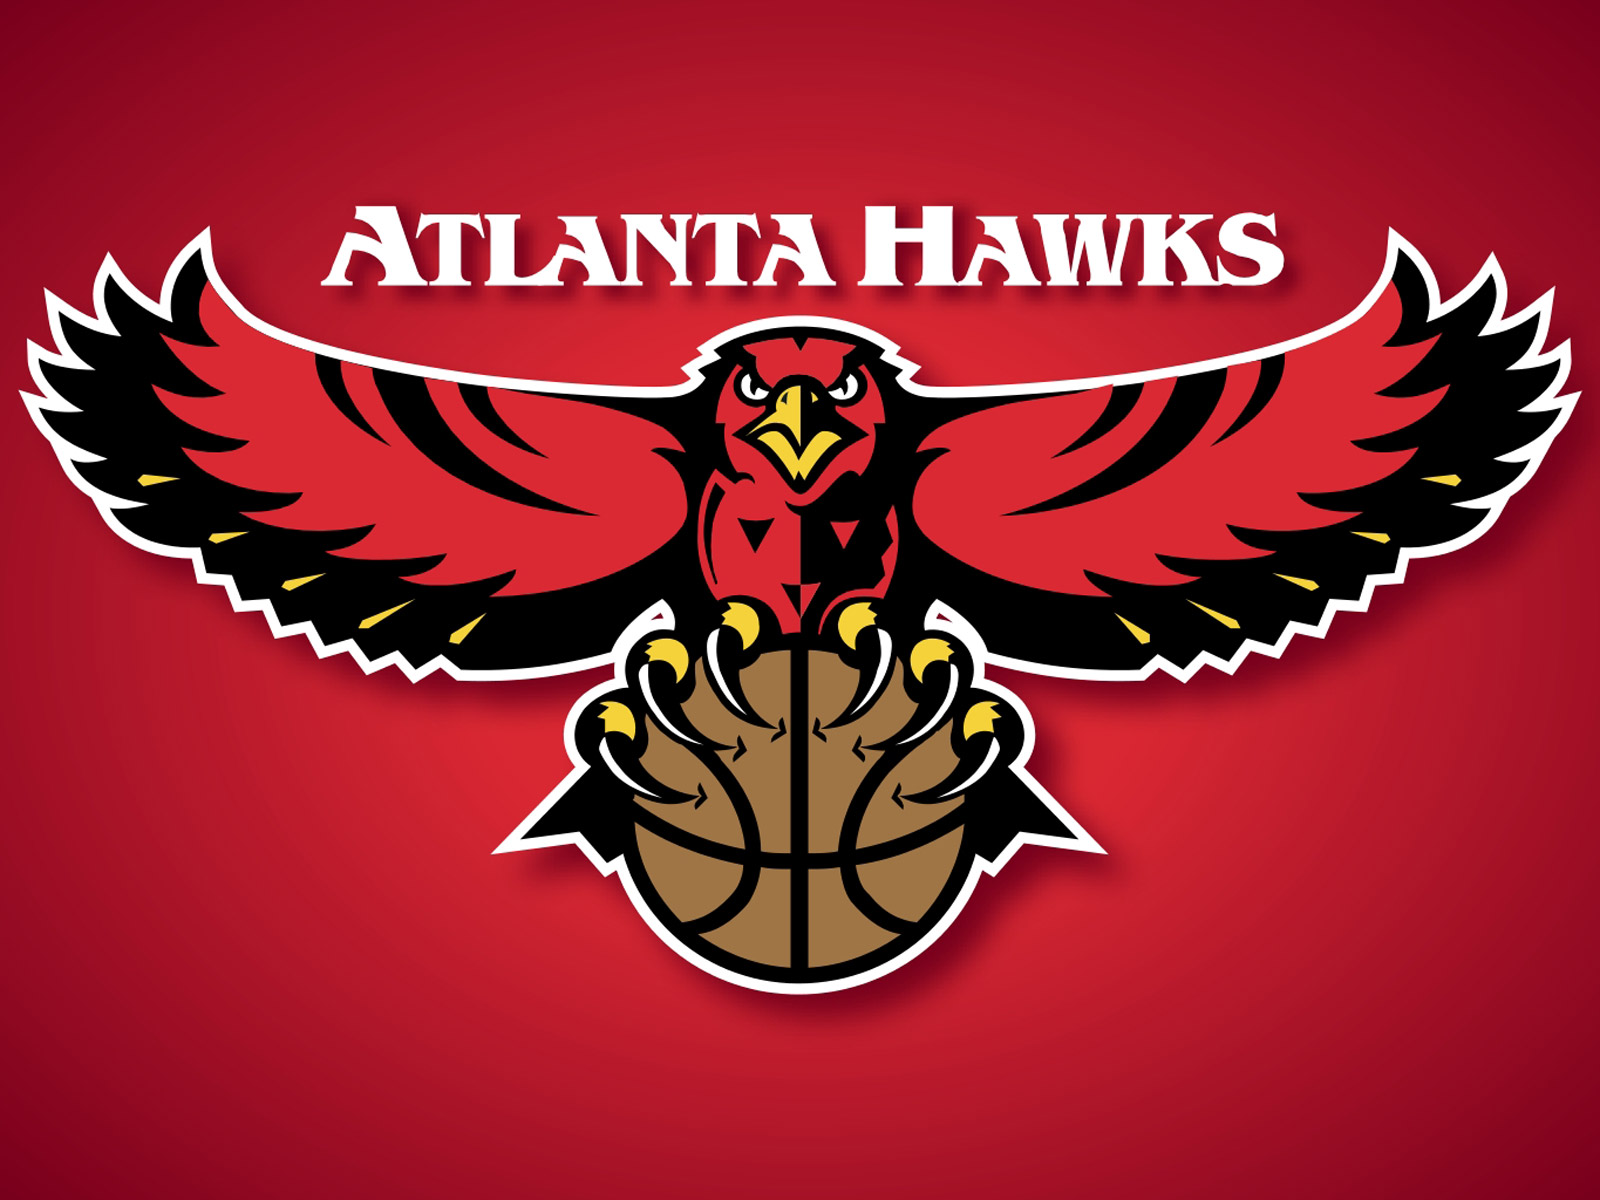 When was the last time the Atlanta Hawks won the NBA Title